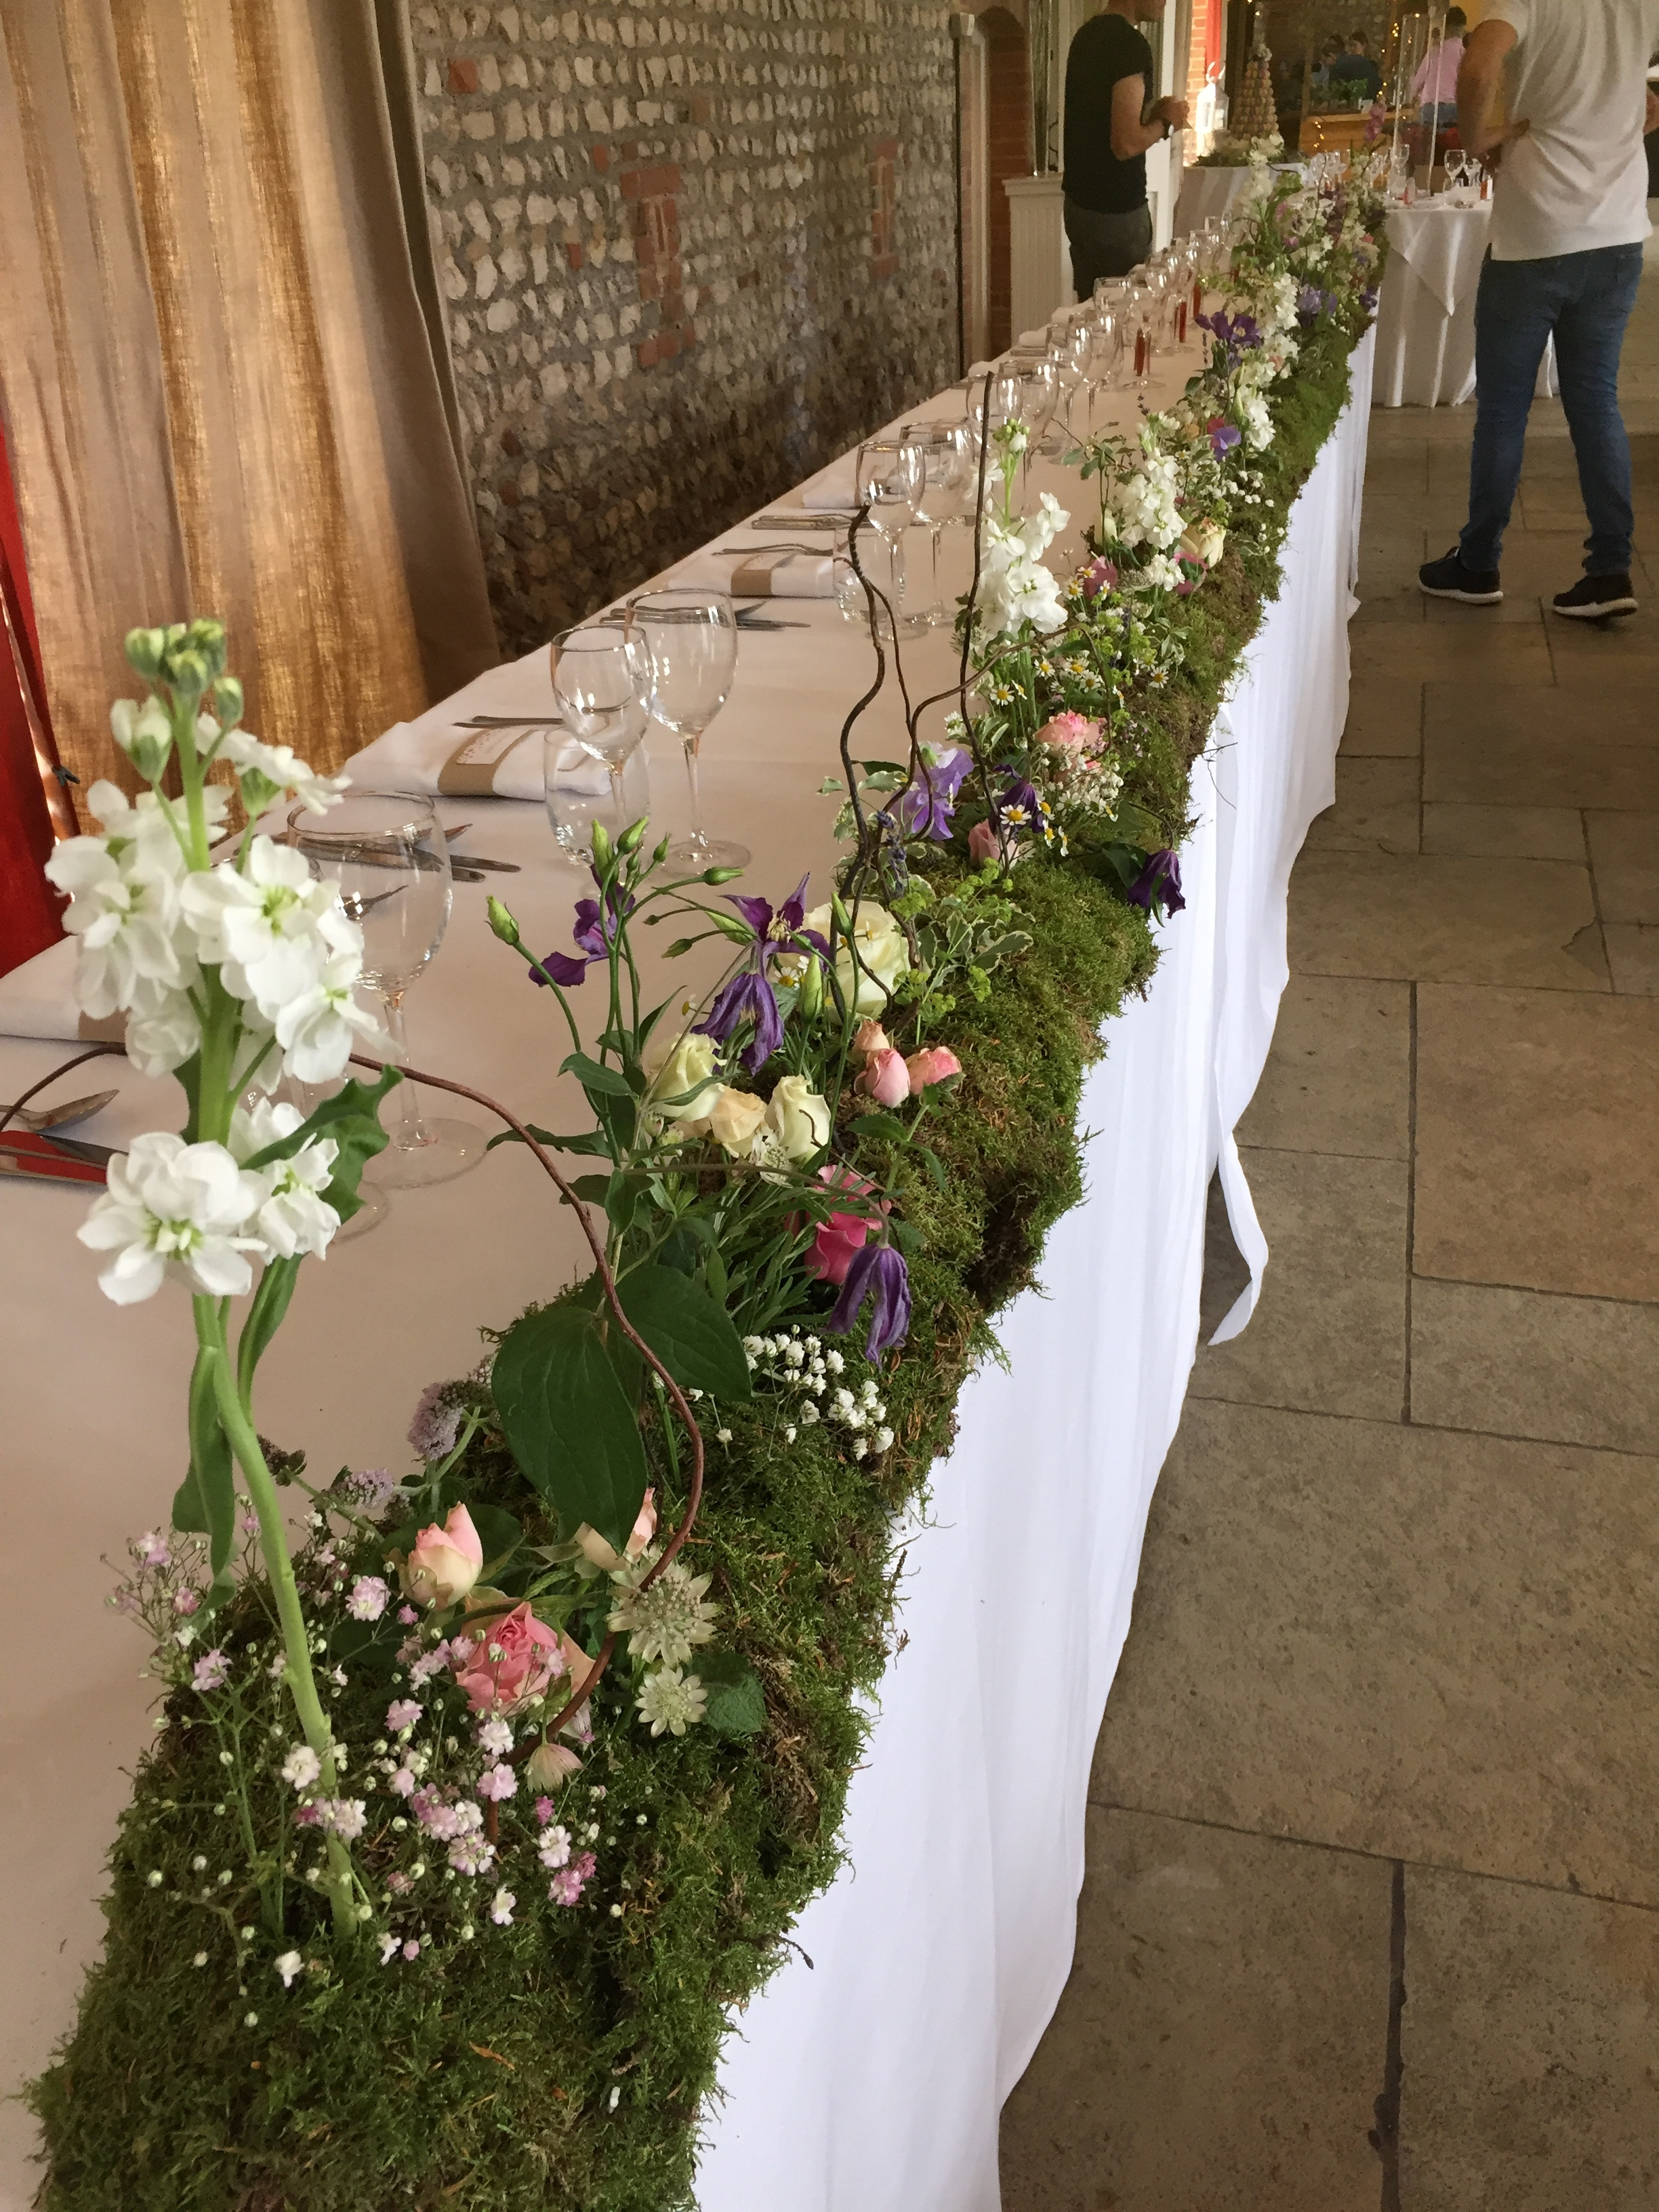 We created a moss runner the entire length of the Top Table and 'planted' a mixture of flowers and herbs to create a wild garden.